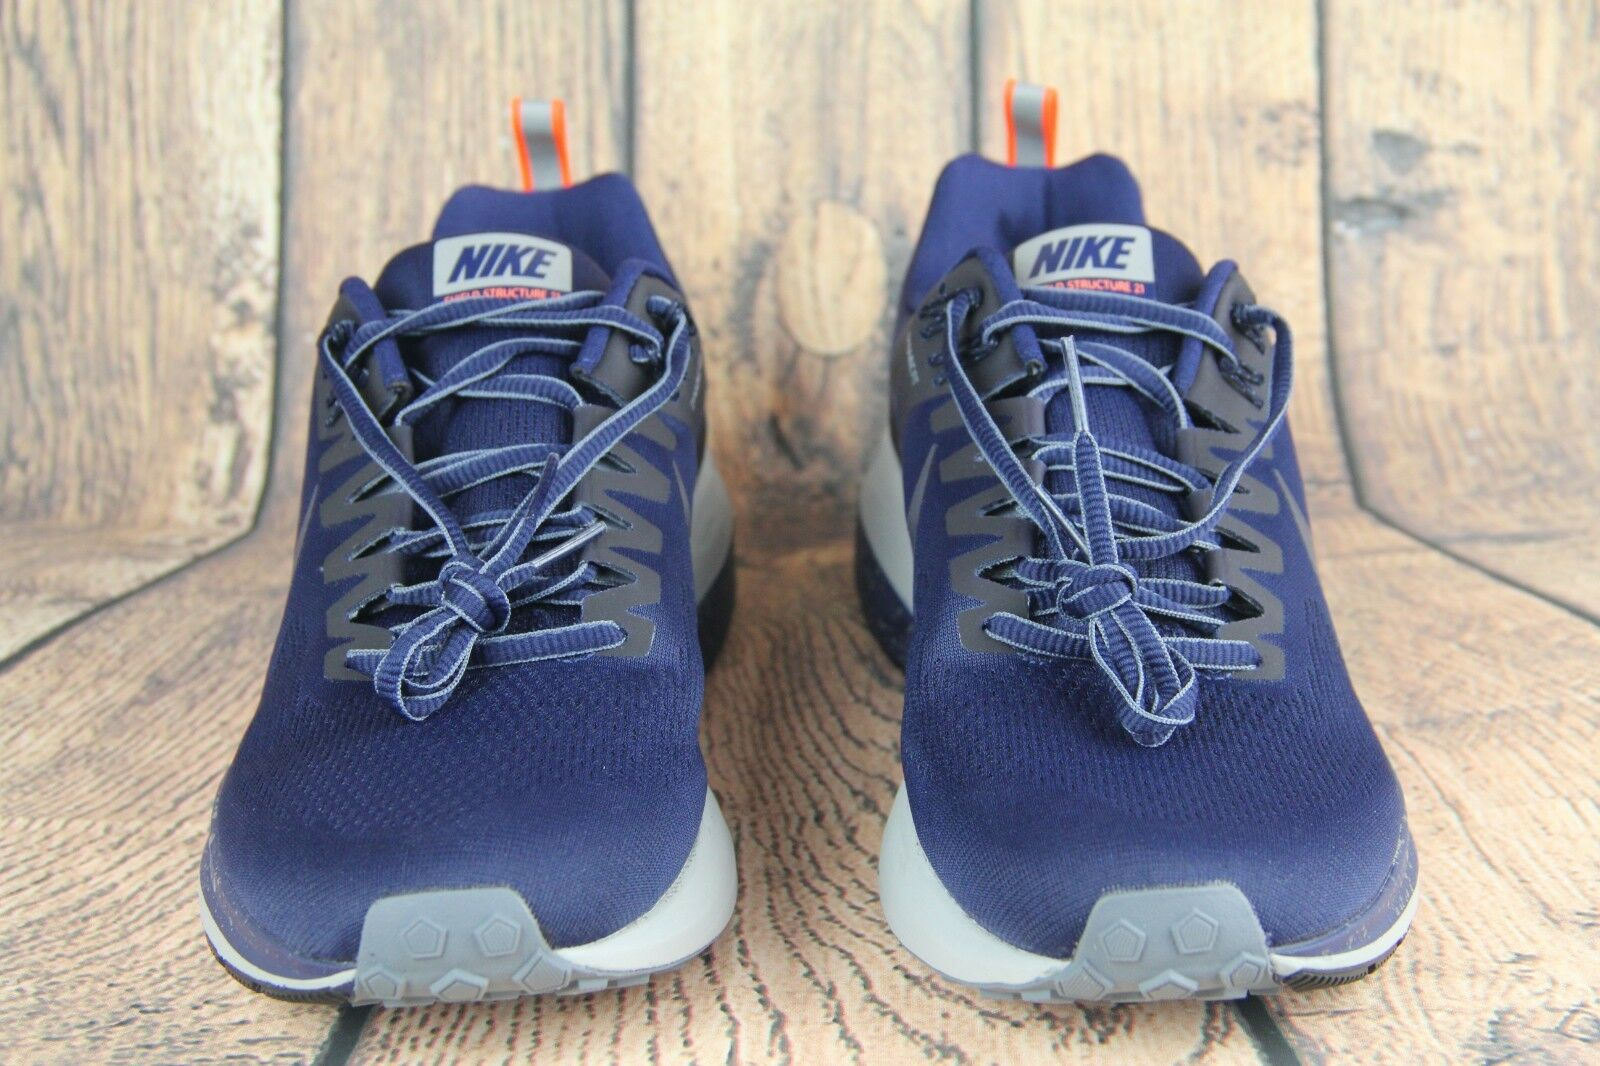 Nike Air Zoom Mens Structure 21 Shield Running shoes bluee Grey 907324-400 Sz 10